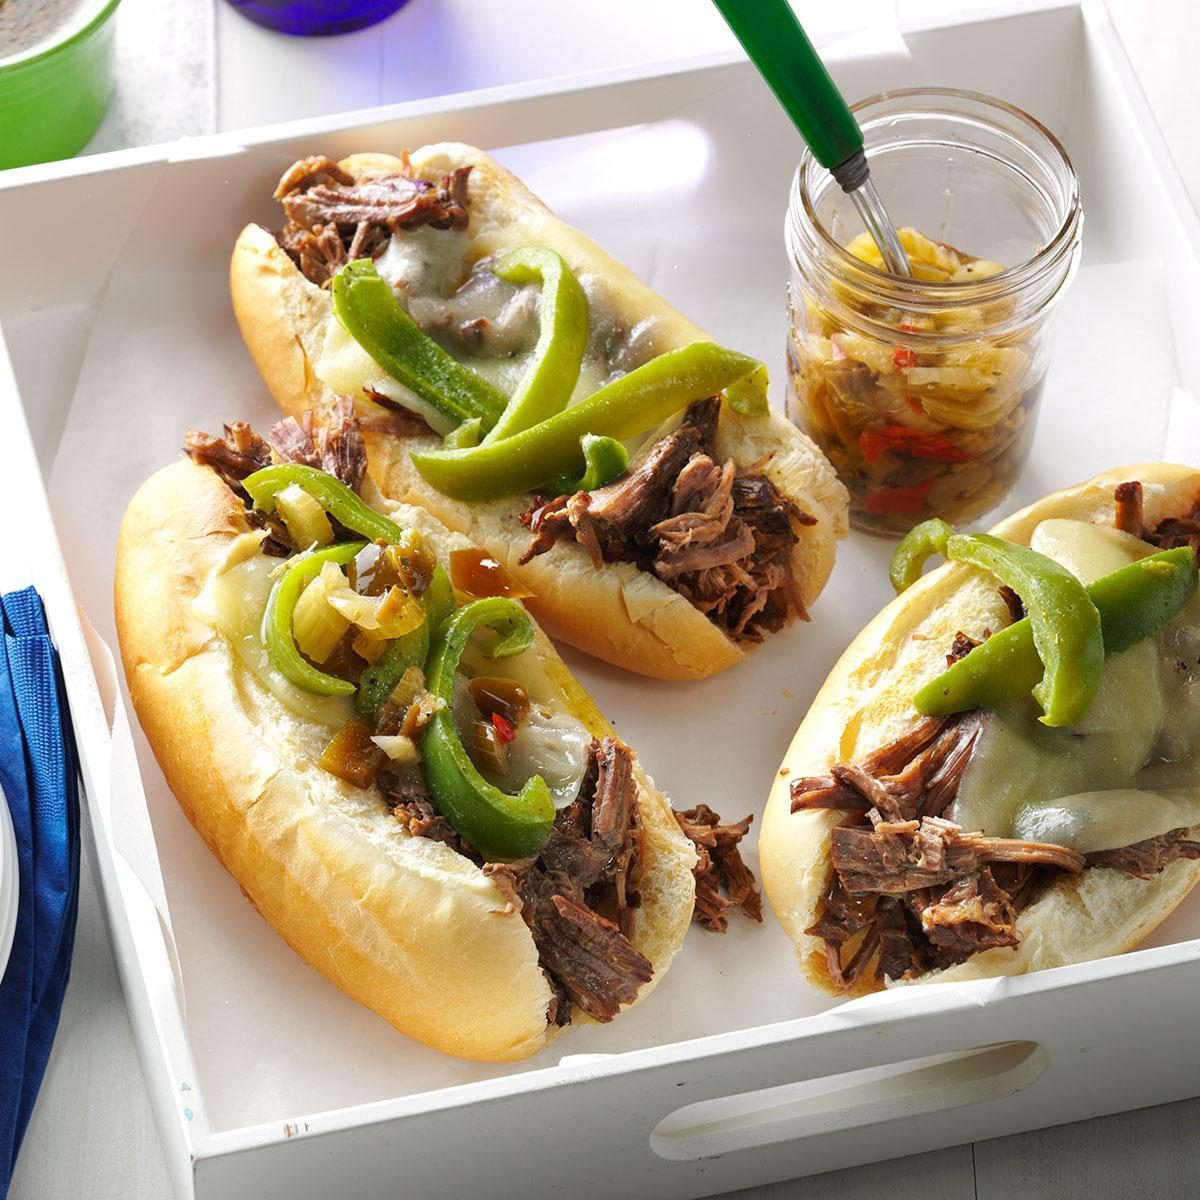 Inspired by: Portillo's Italian Beef Sandwich